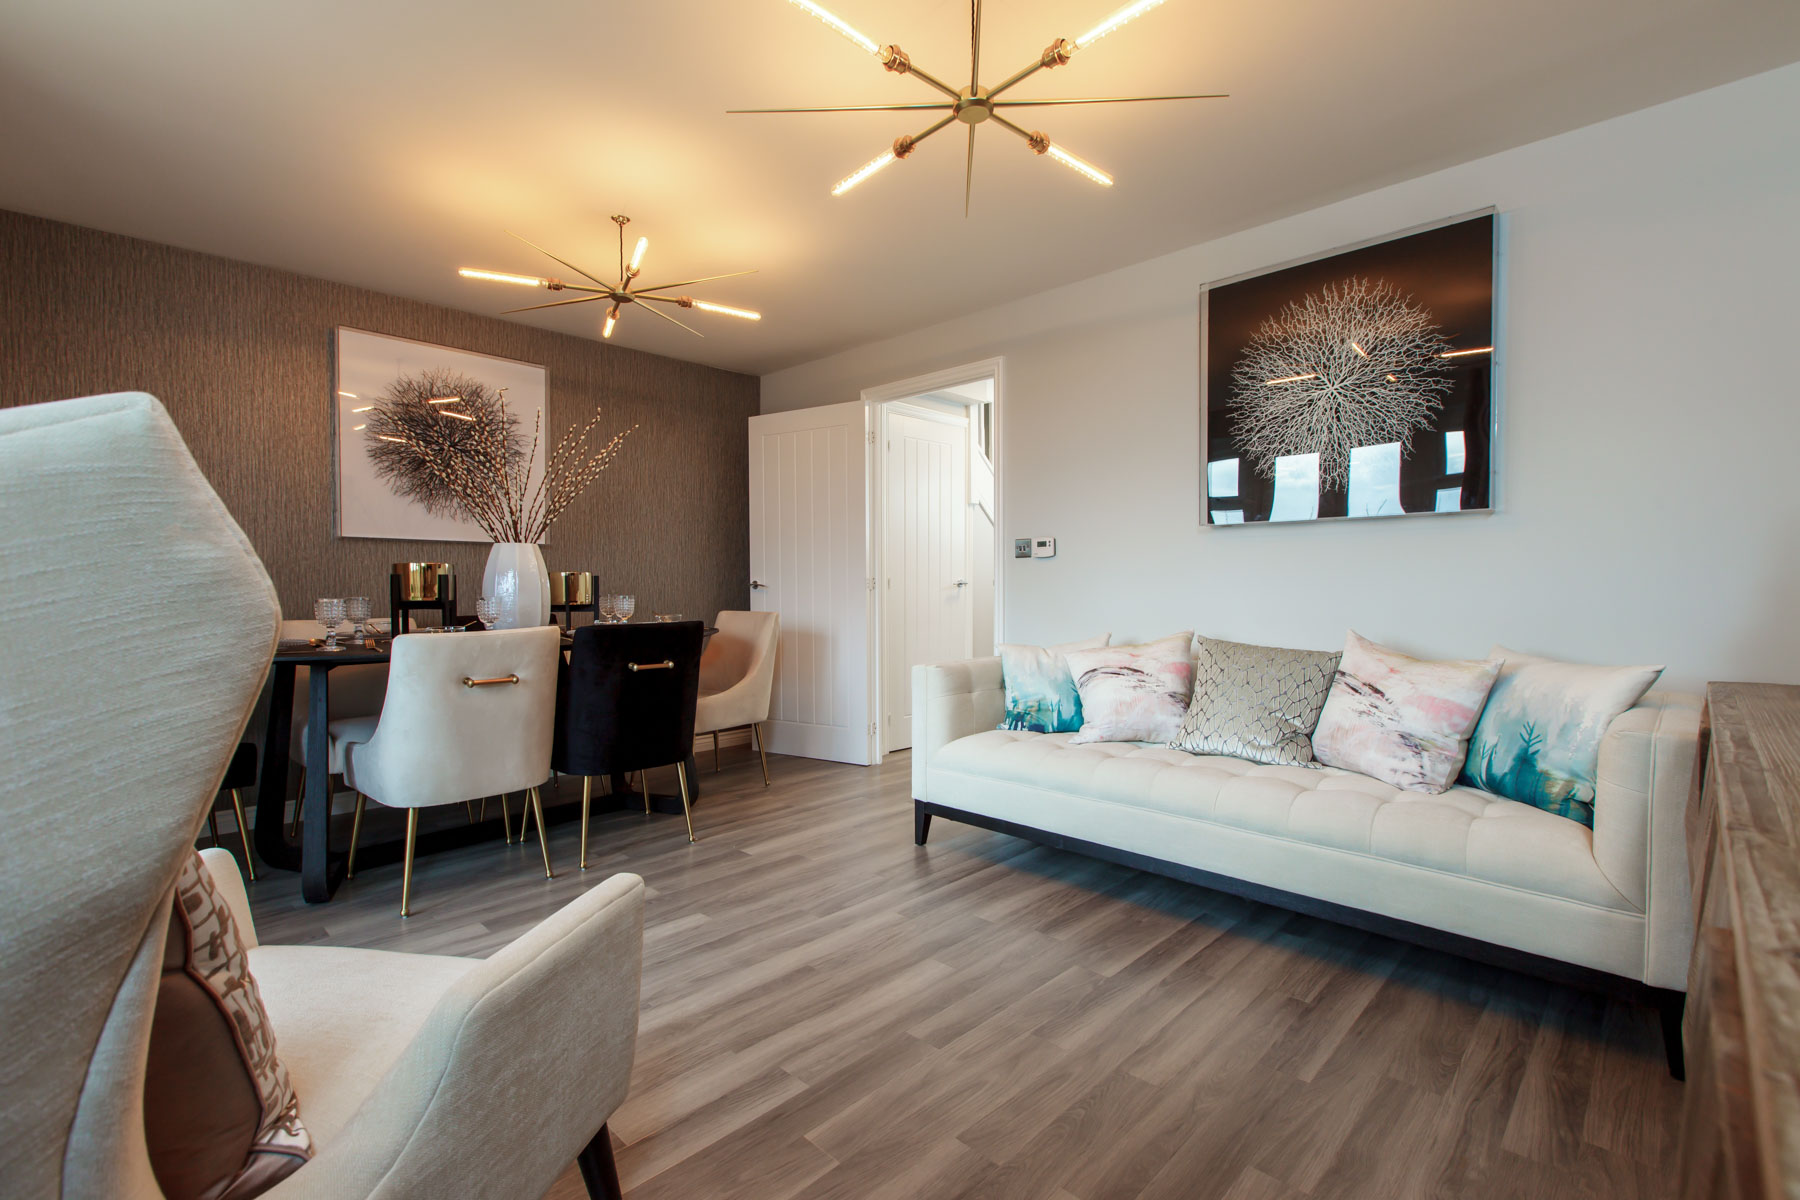 TW Exeter - Mountbatten Mews - Flatford example living room 2